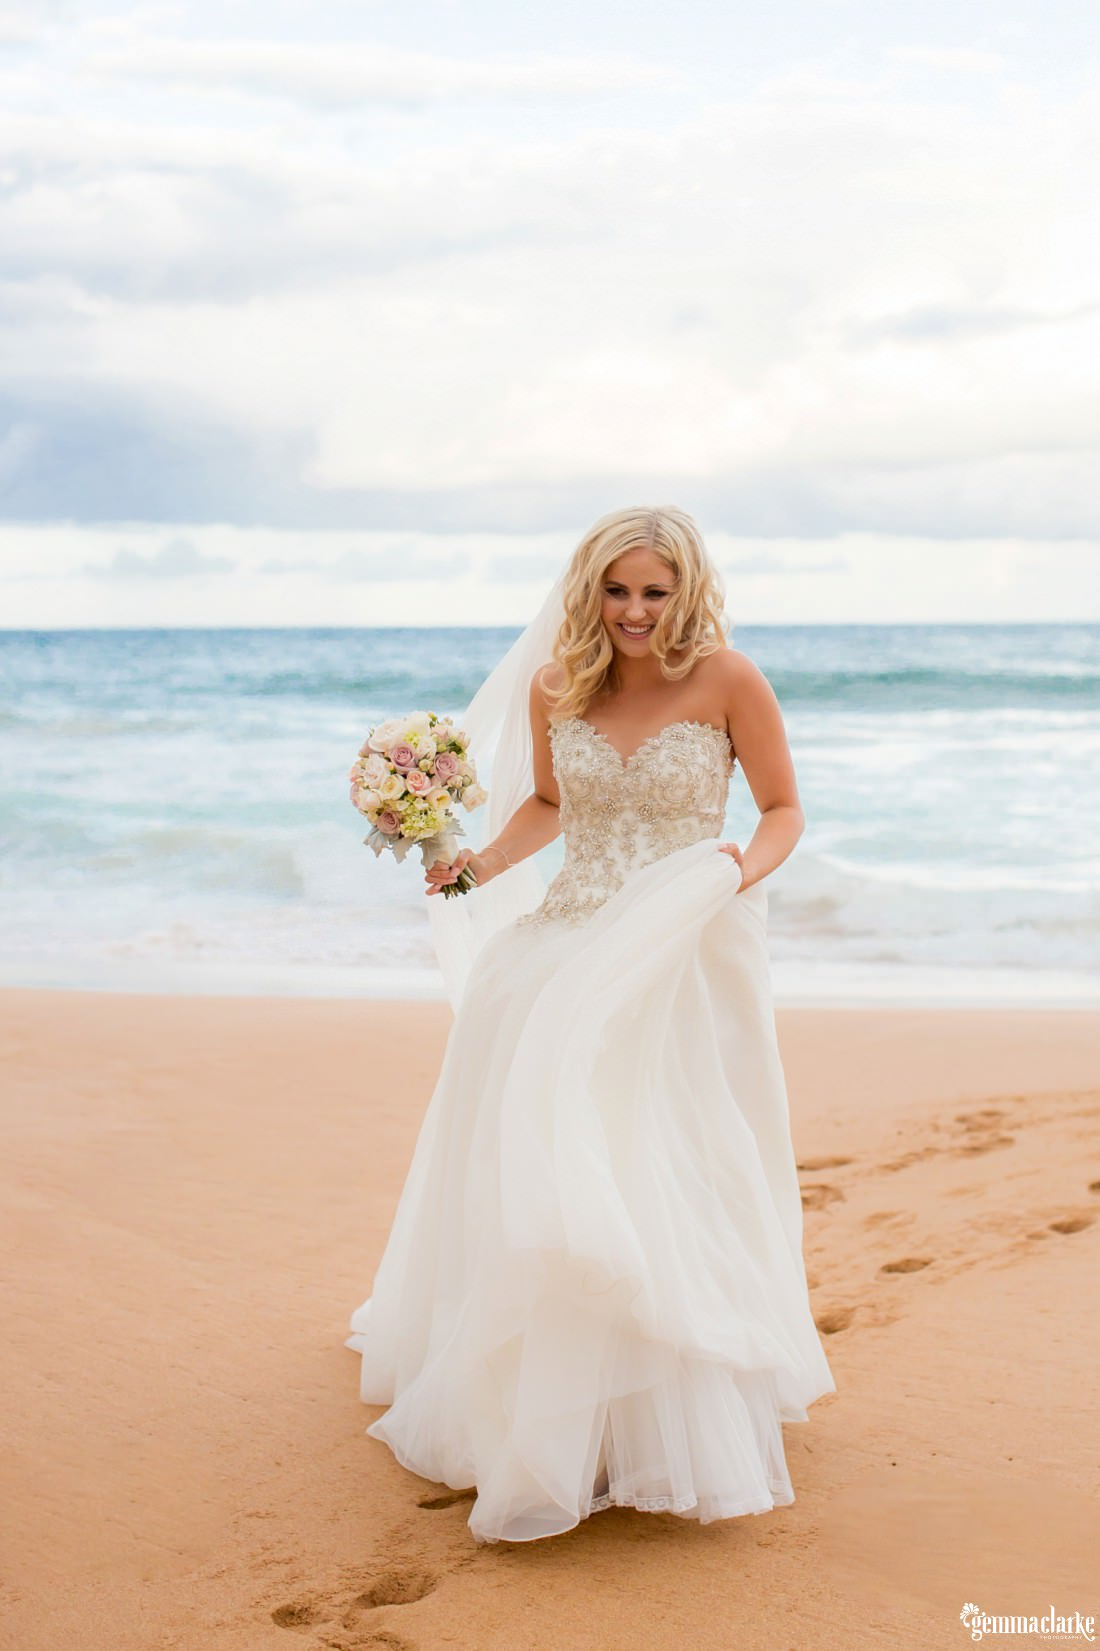 A bride smiling and holding a bouquet, standing on a beach as waves crash in the background